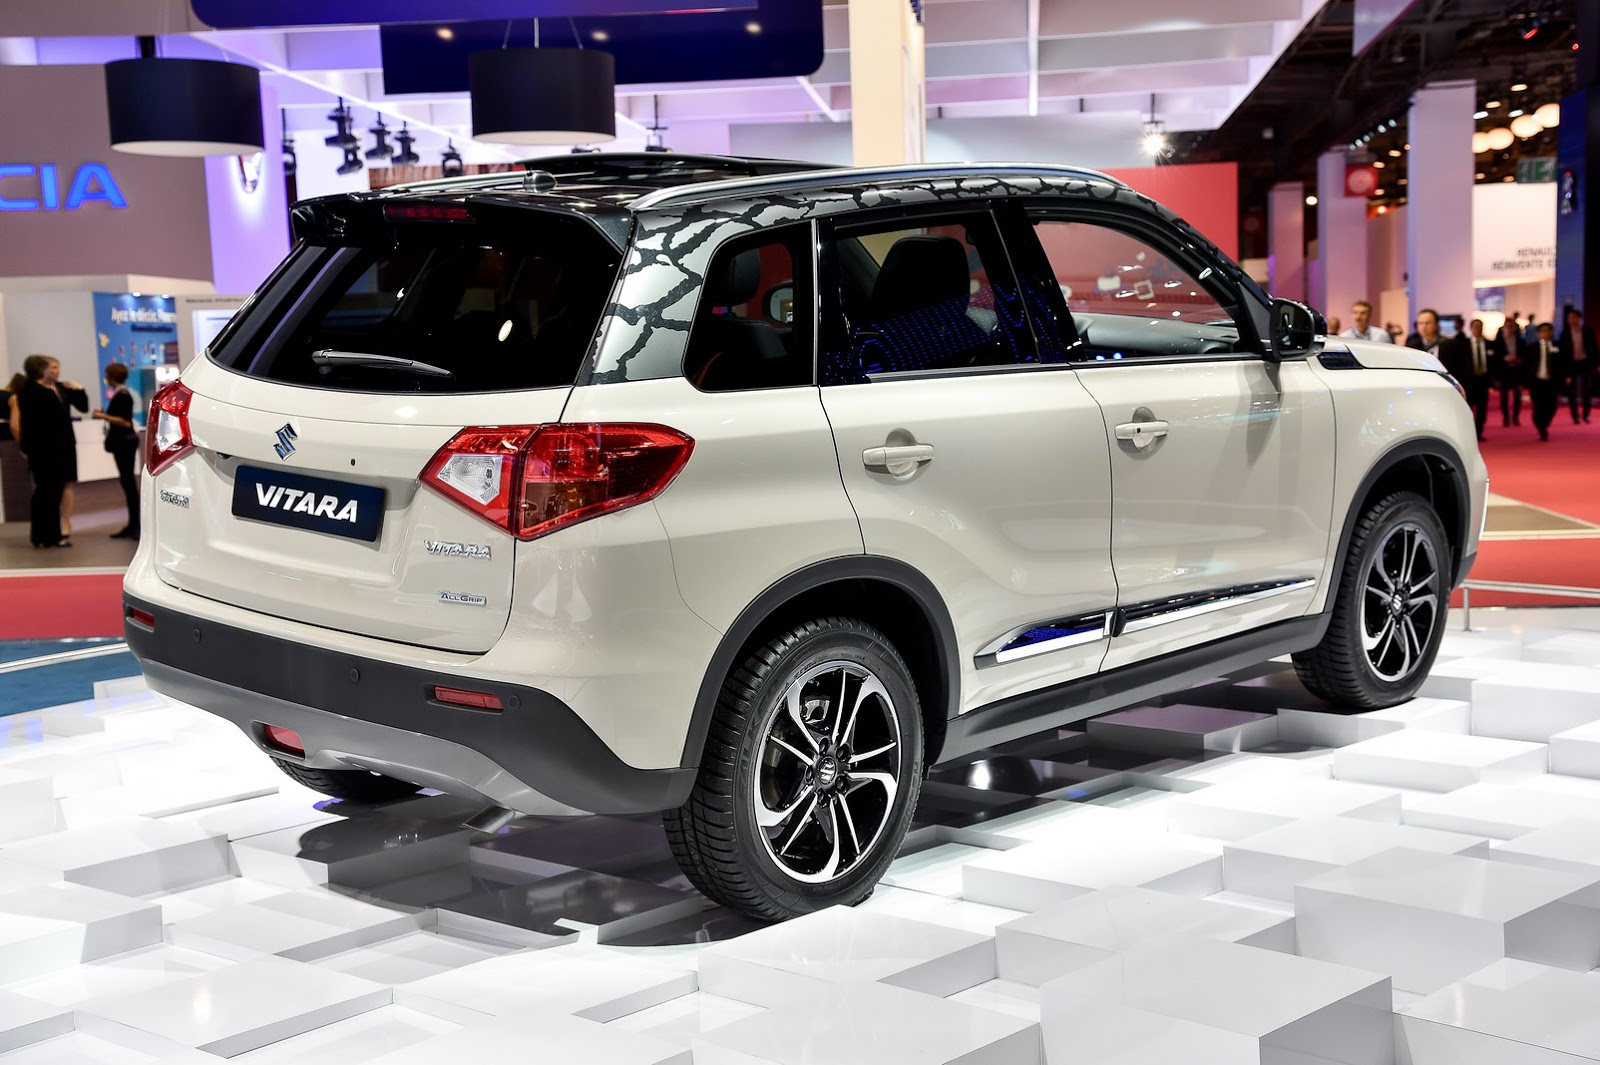 suzuki 39 s new vitara suv goes mainstream in paris carscoops. Black Bedroom Furniture Sets. Home Design Ideas